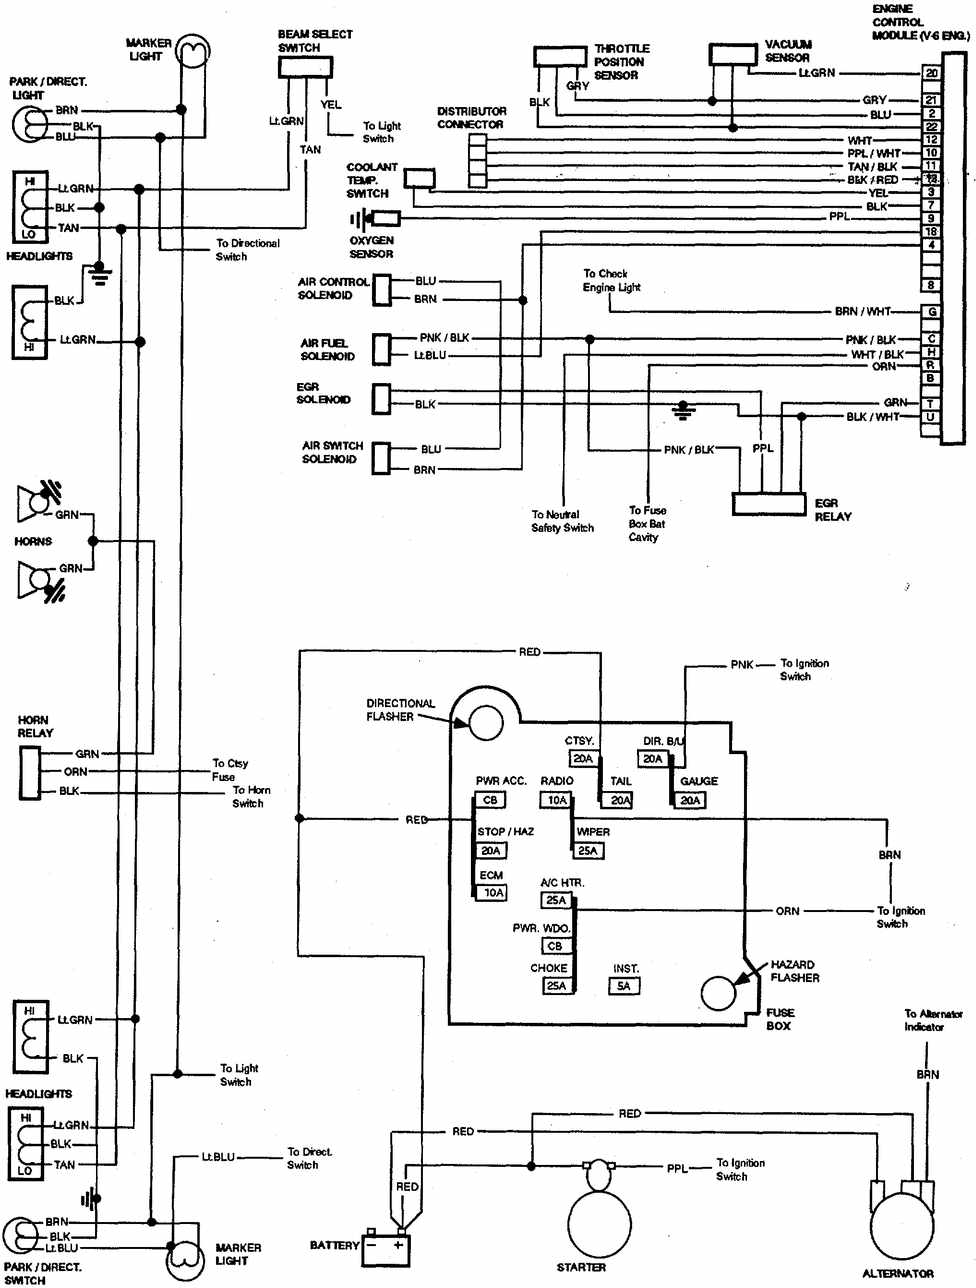 88 Gmc 1500 Wiring Diagram Will Be A Thing Avanti Chevrolet V8 Trucks 1981 1987 Electrical 4x4 94 Suburban Custom Bumper